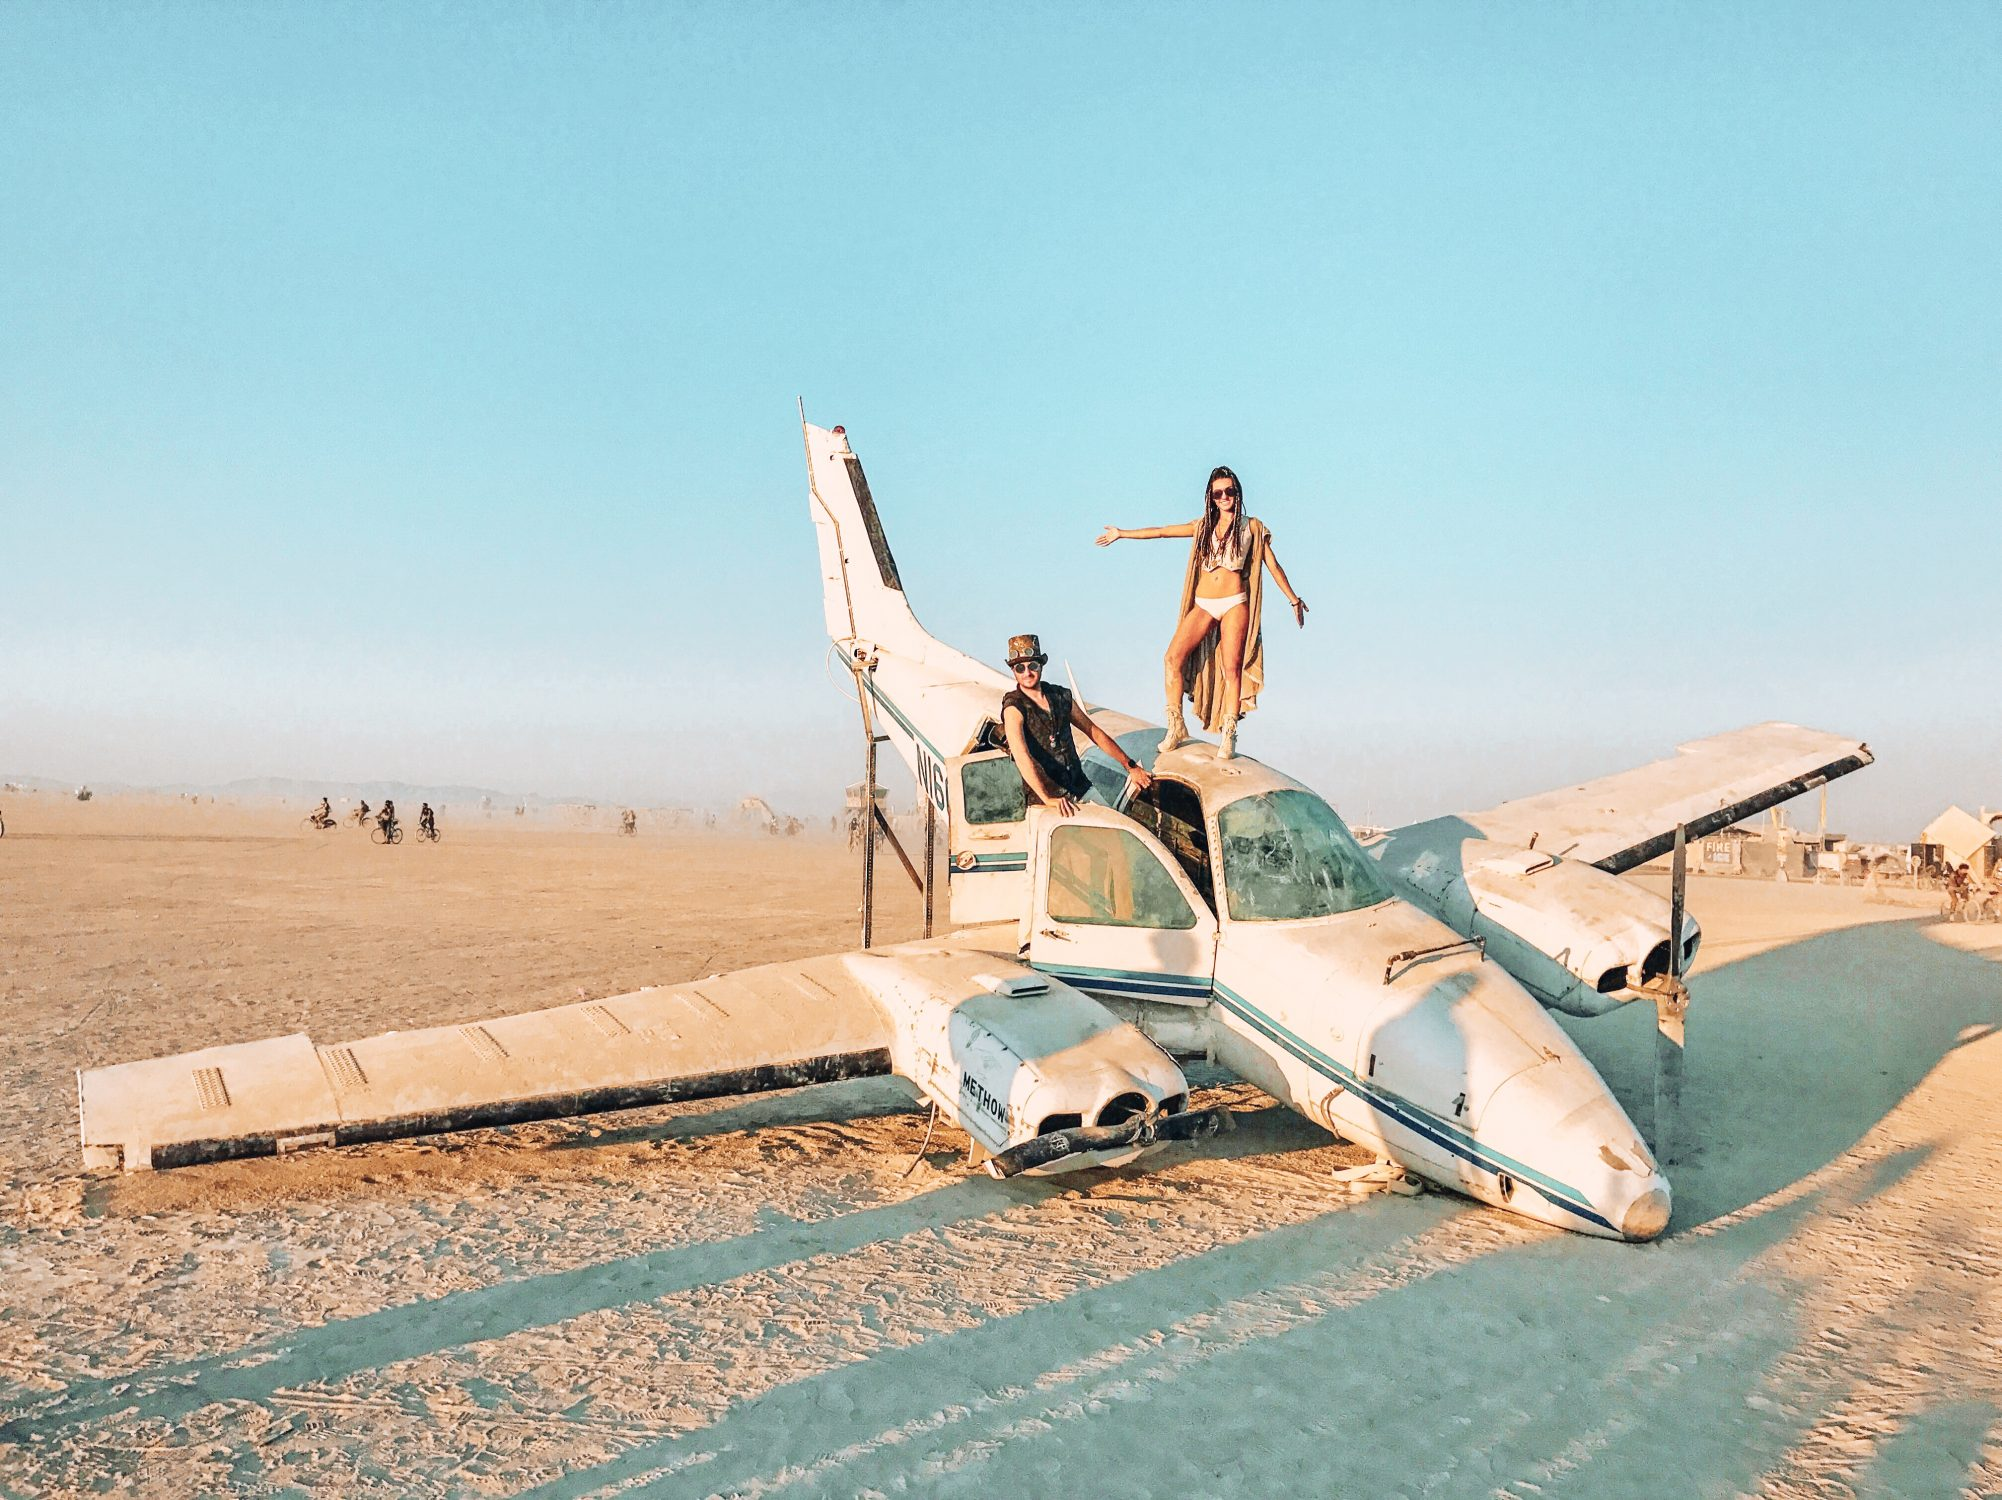 Plane Burning Man Art